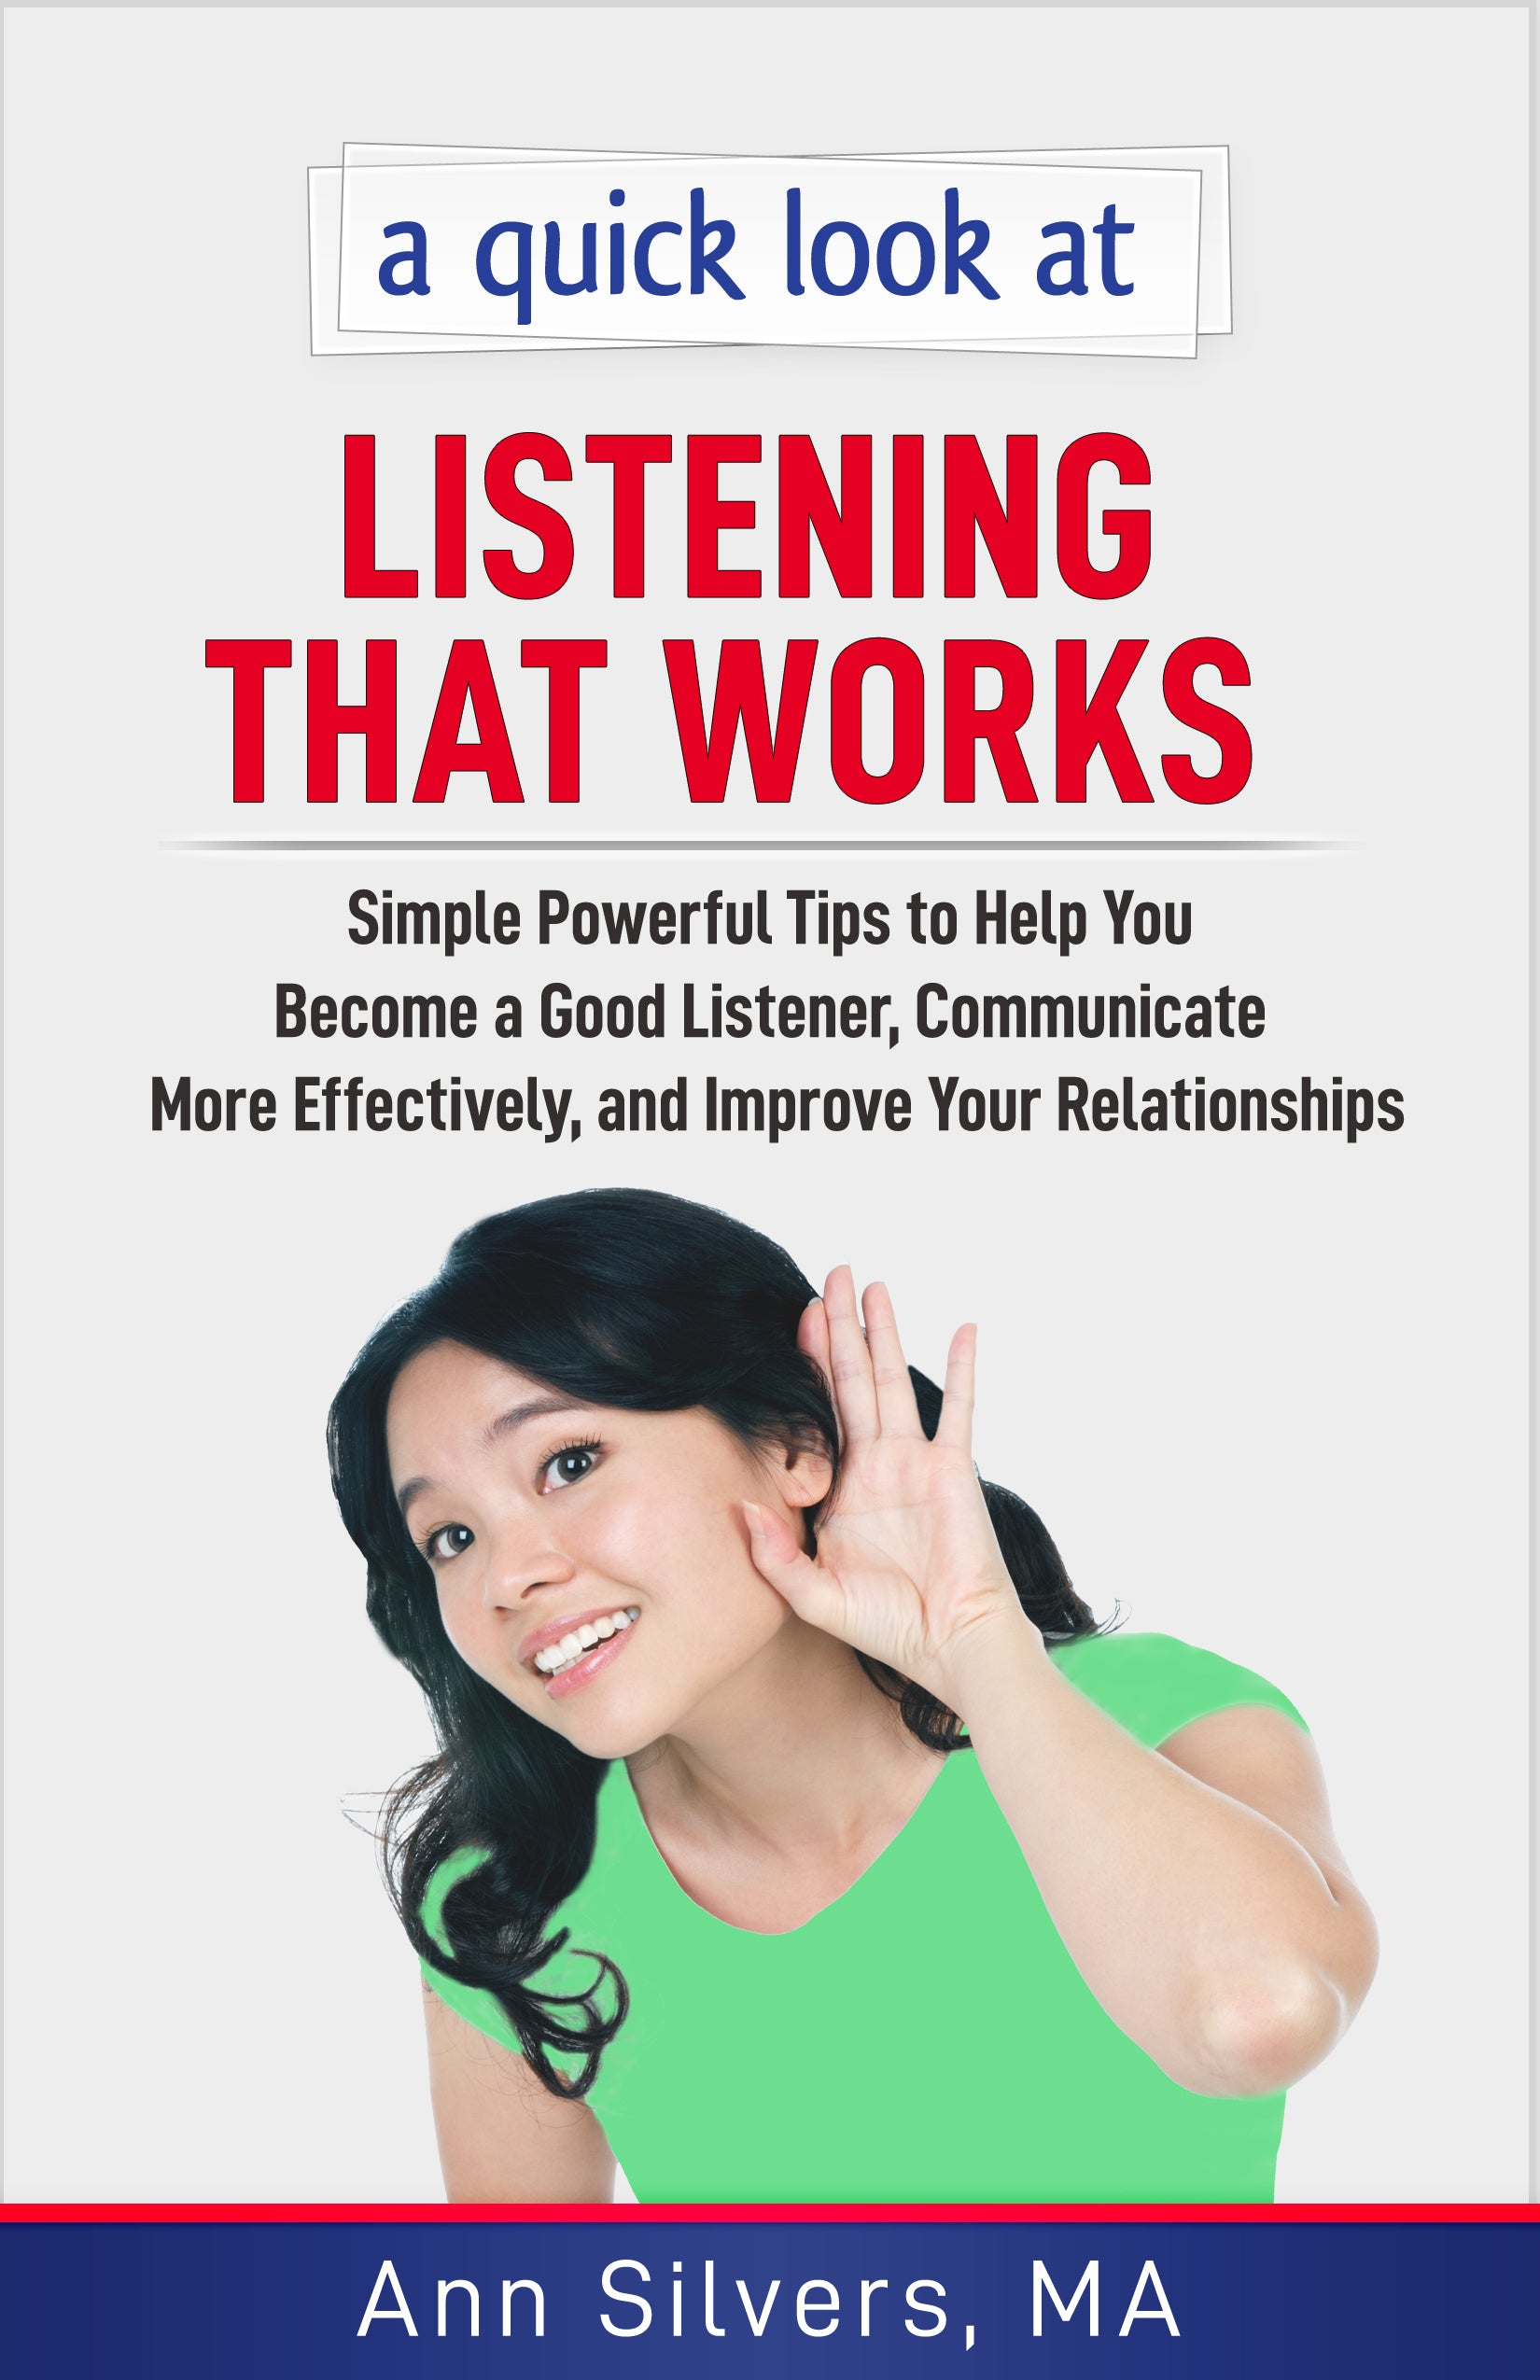 A quick look at Listening That Works: Simple Powerful Tips to Help You Become a Good Listener, Communicate More Effectively, and Improve Your Relationships